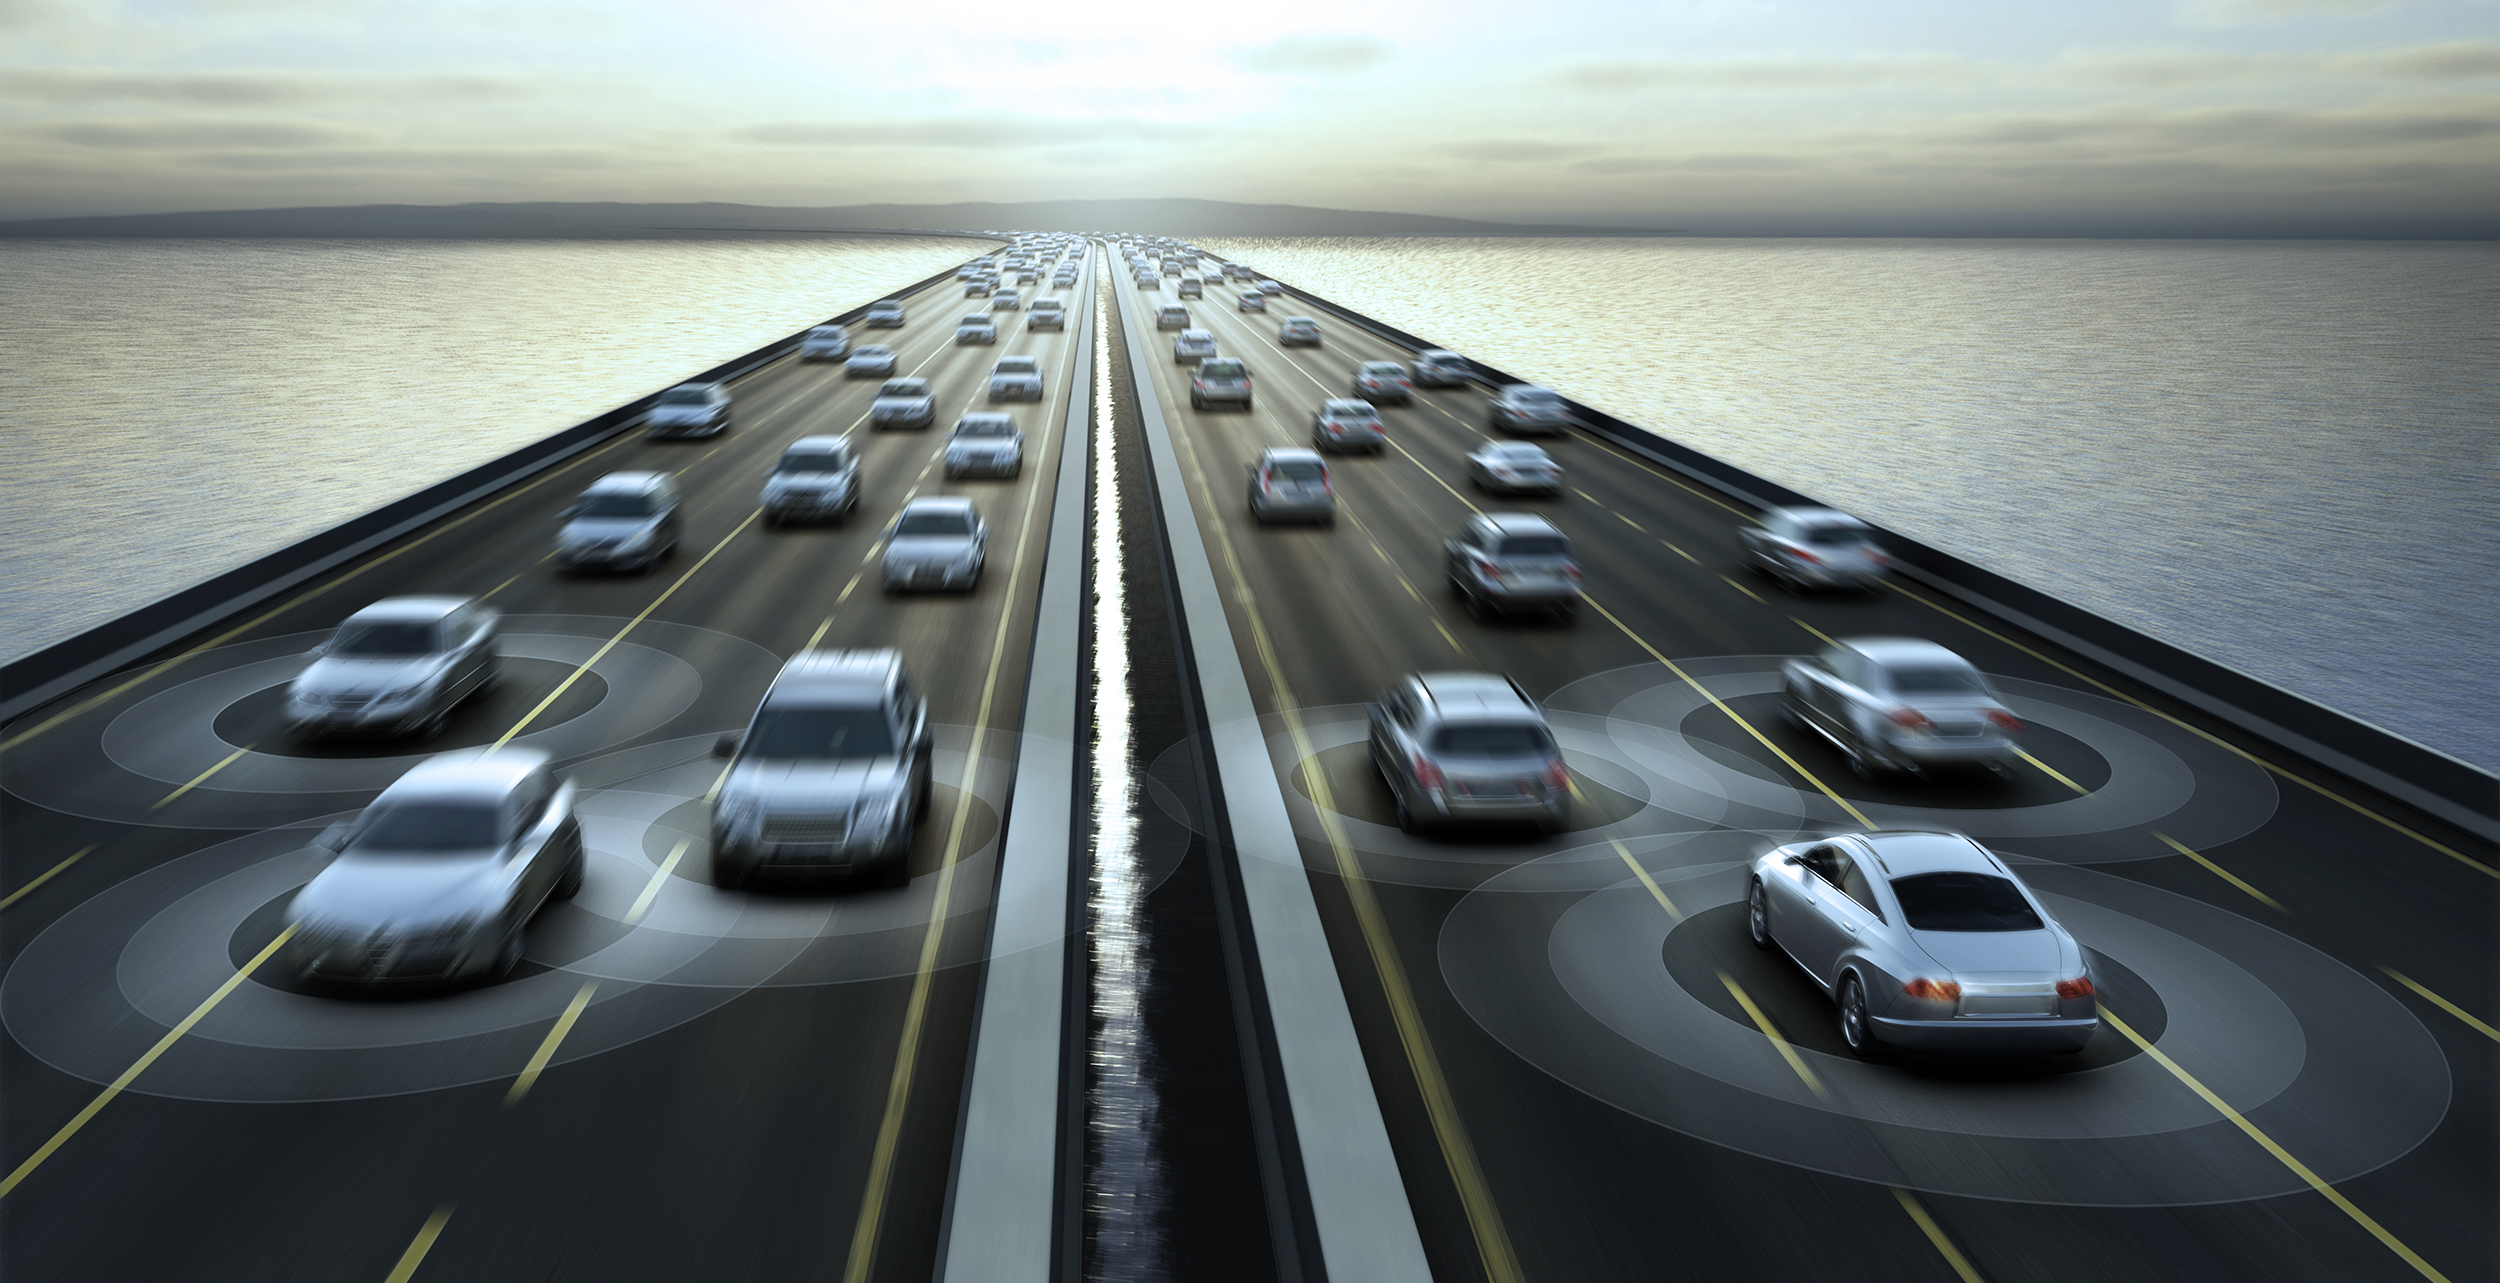 Connected Cars Expected to Contribute USD 18 Trillion to European Economy by 2050